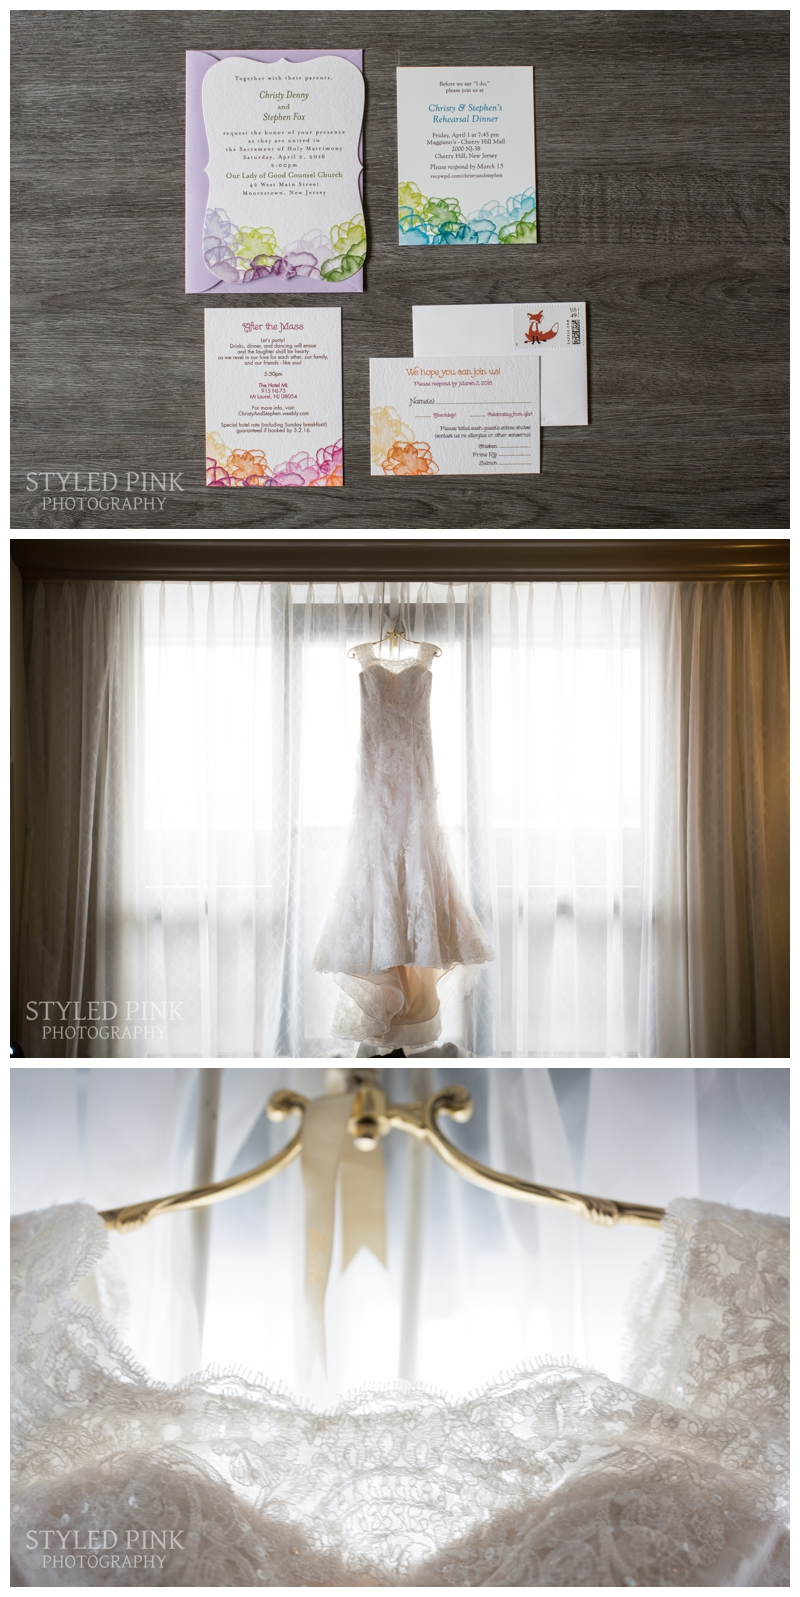 styledpink-hotel-ml-wedding-4